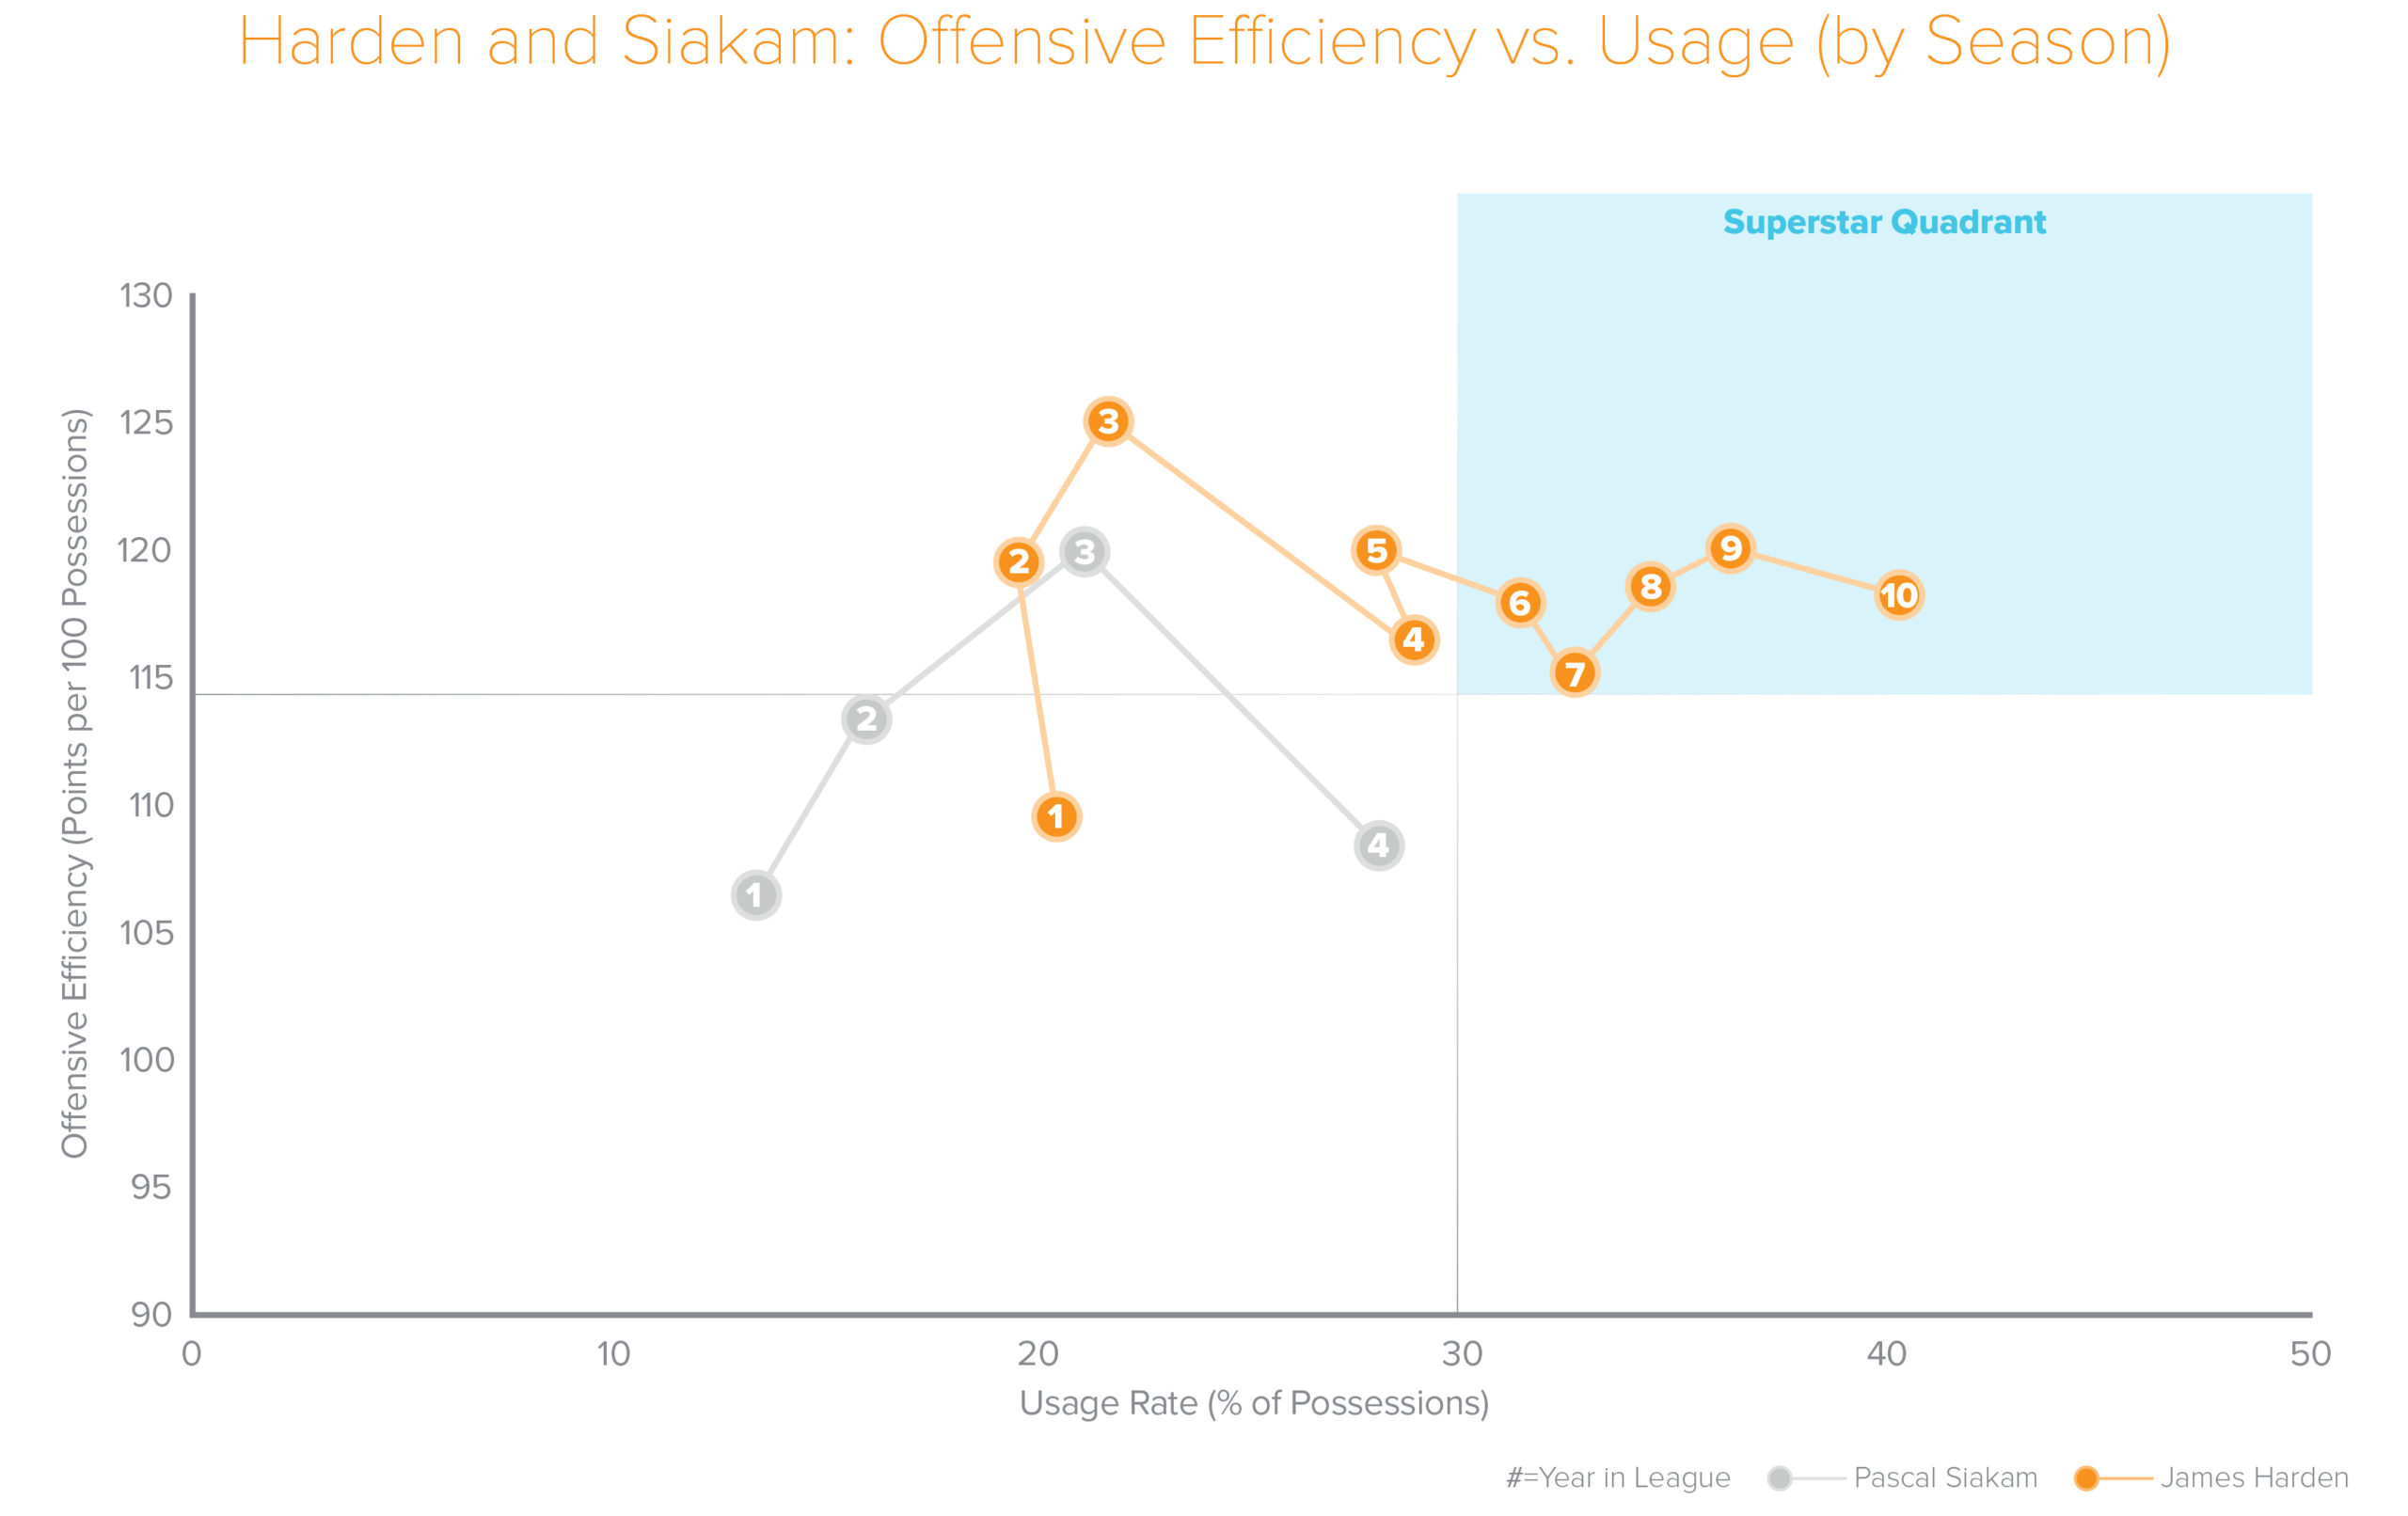 Harden and Siakam: Offensive Efficiency vs Usage by Season